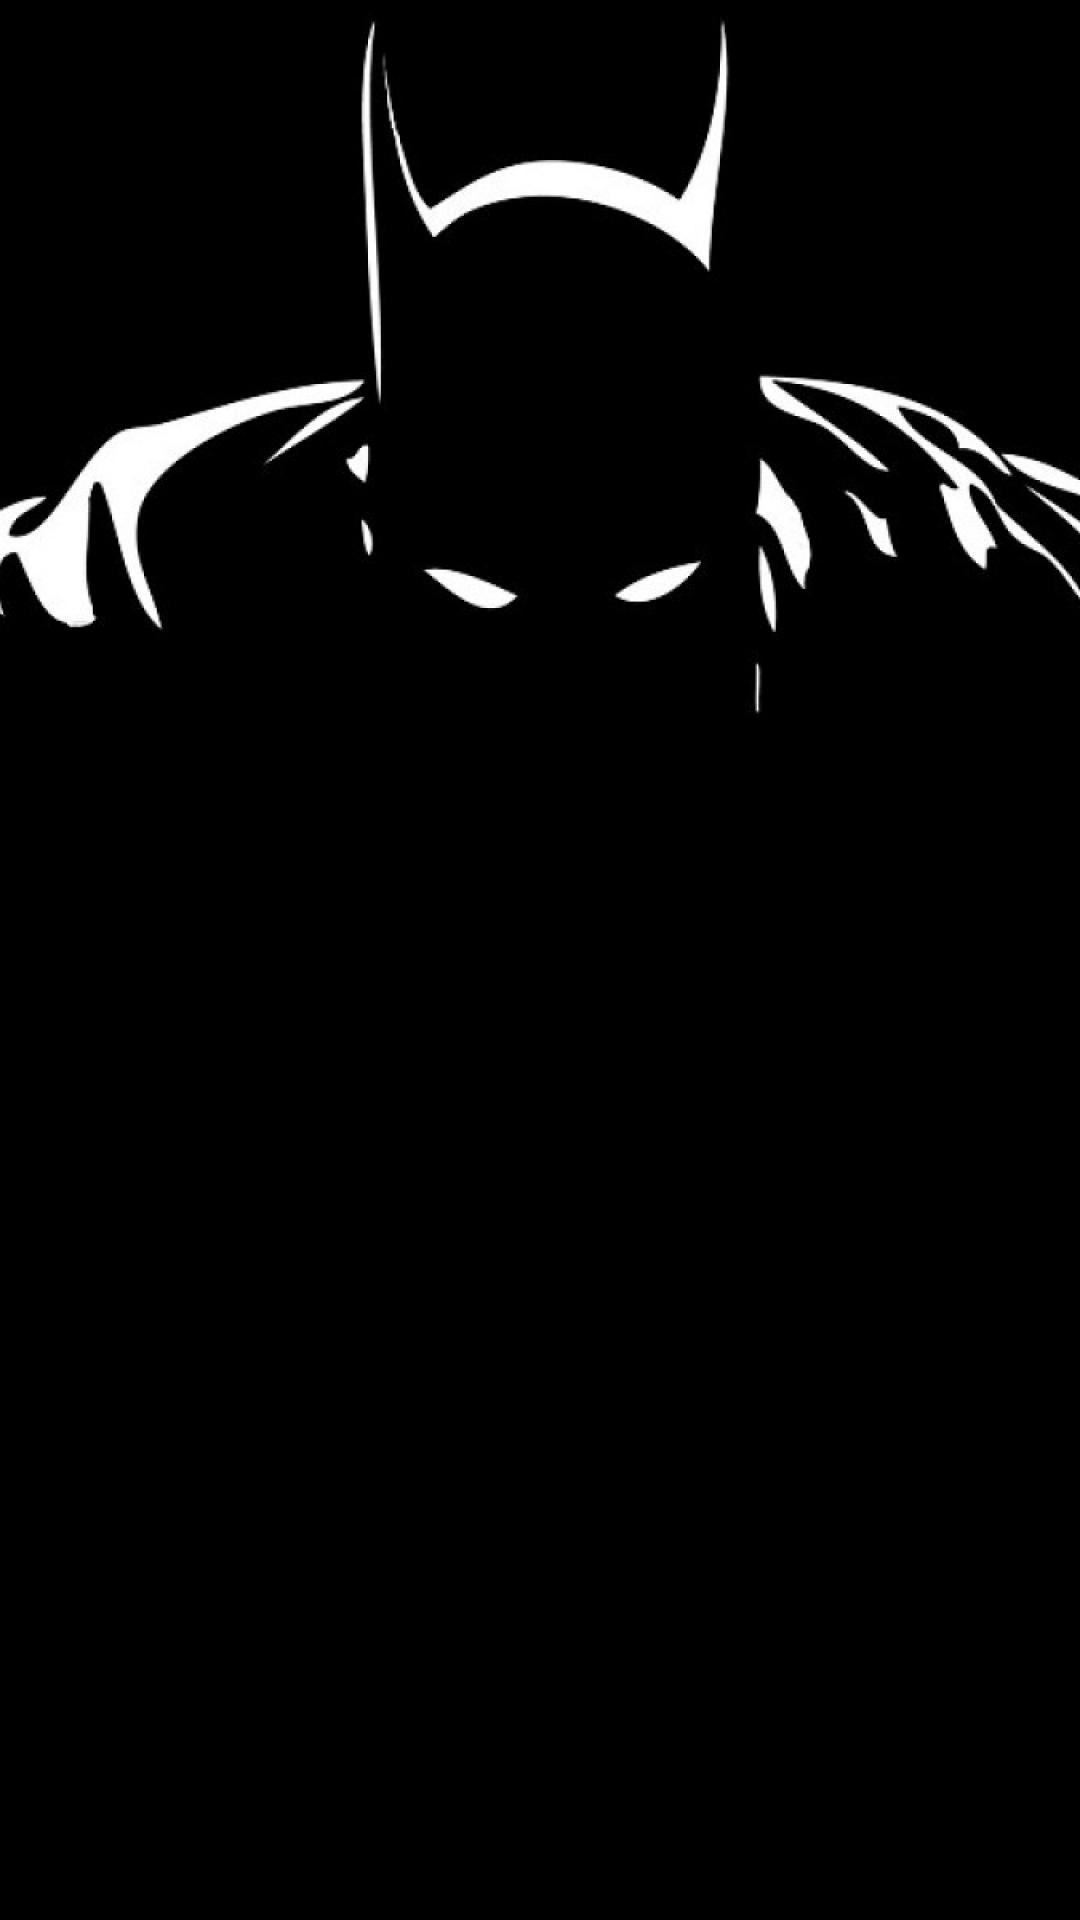 batman iphone wallpaper hd | page 3 of 3 | wallpaper.wiki